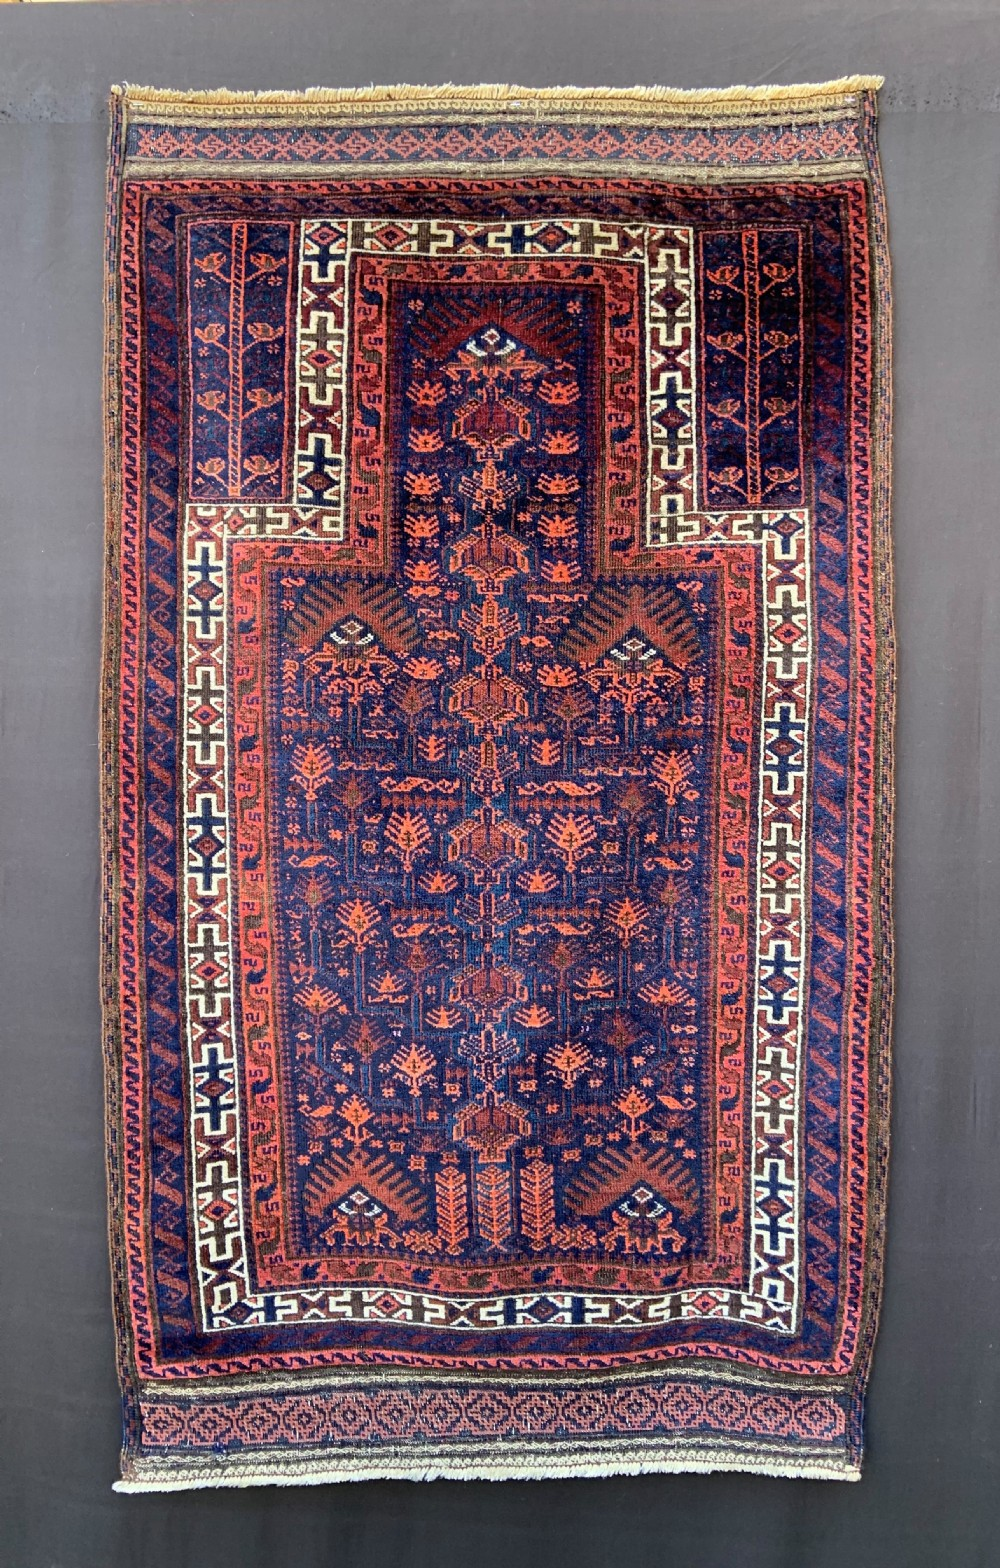 antique prayerrug timuri tribes borderlands of eastern persia western afghanistan